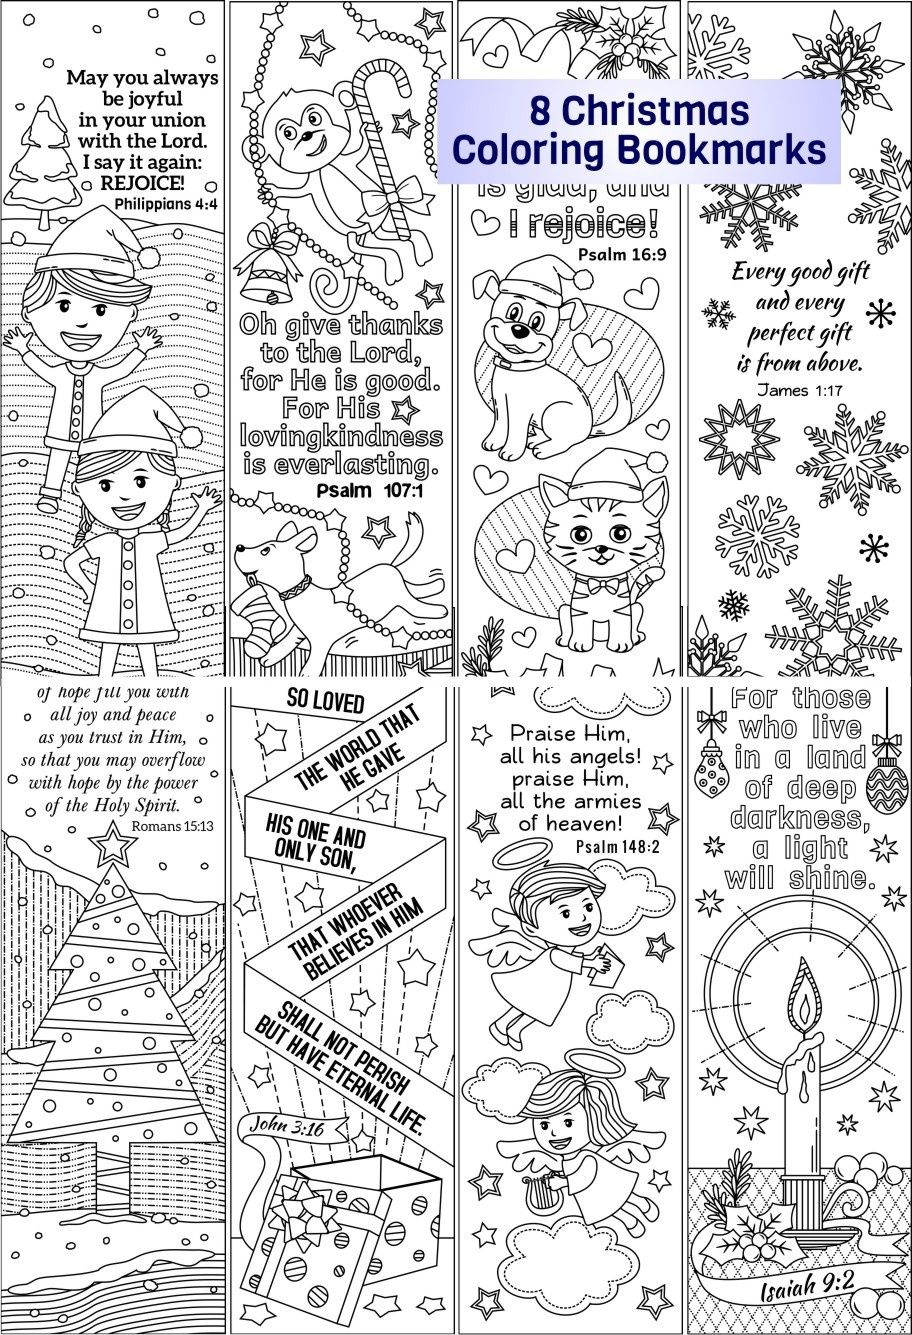 christmas coloring bookmarks (plus colored items) | christmas